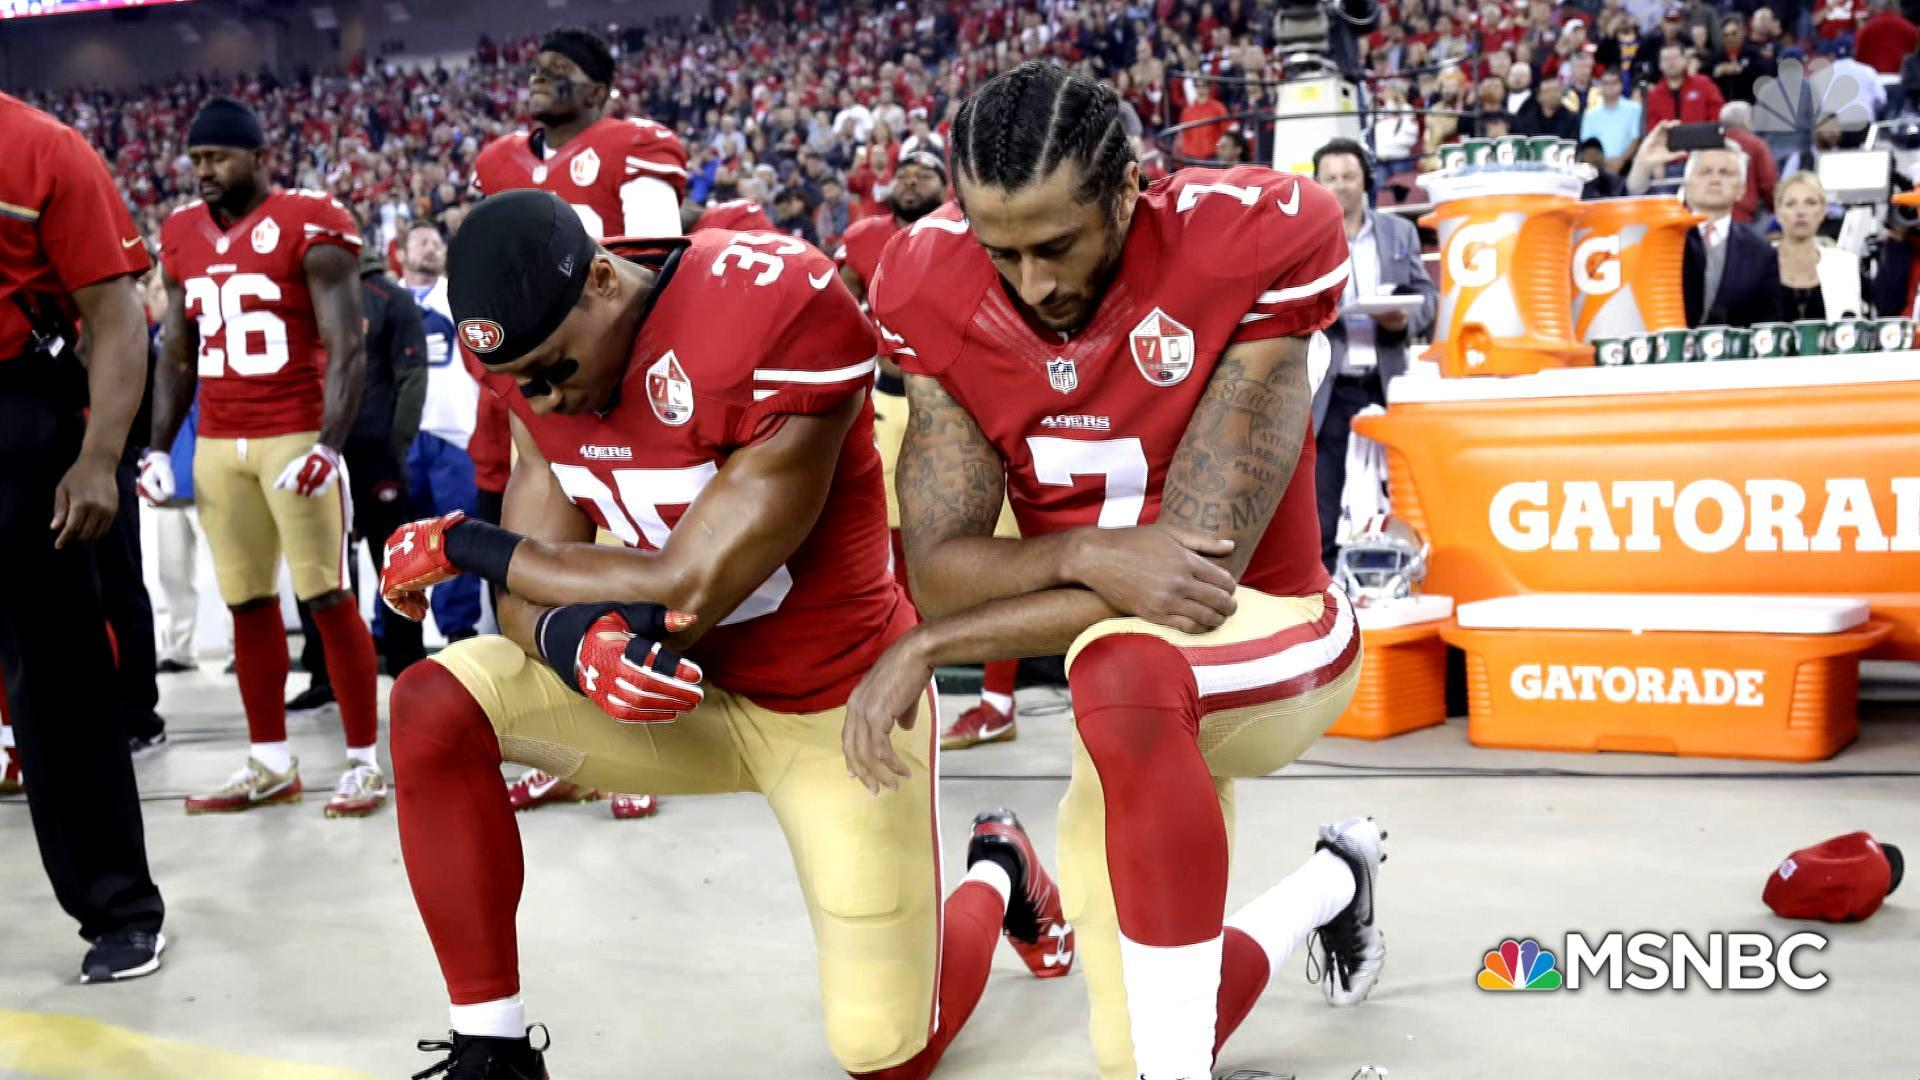 Has sports become the latest platform for activism?